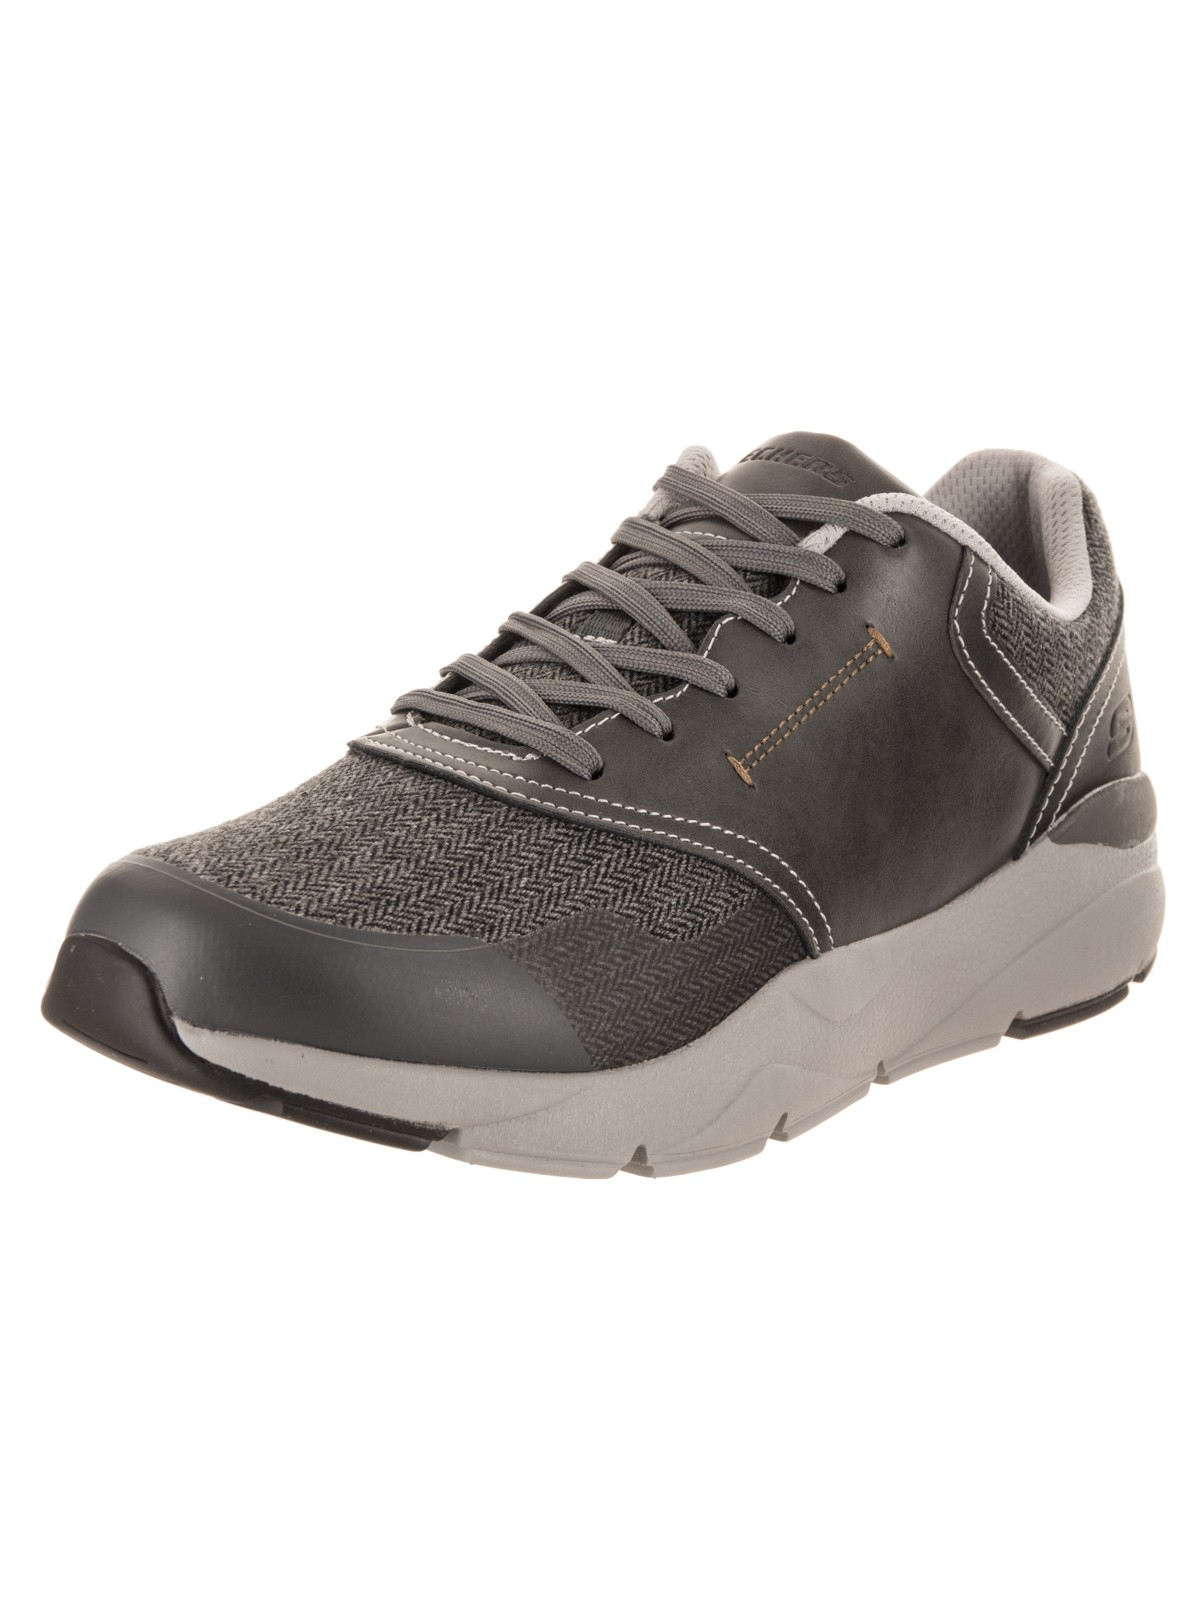 Skechers Men's Recent - Anego Casual Shoe